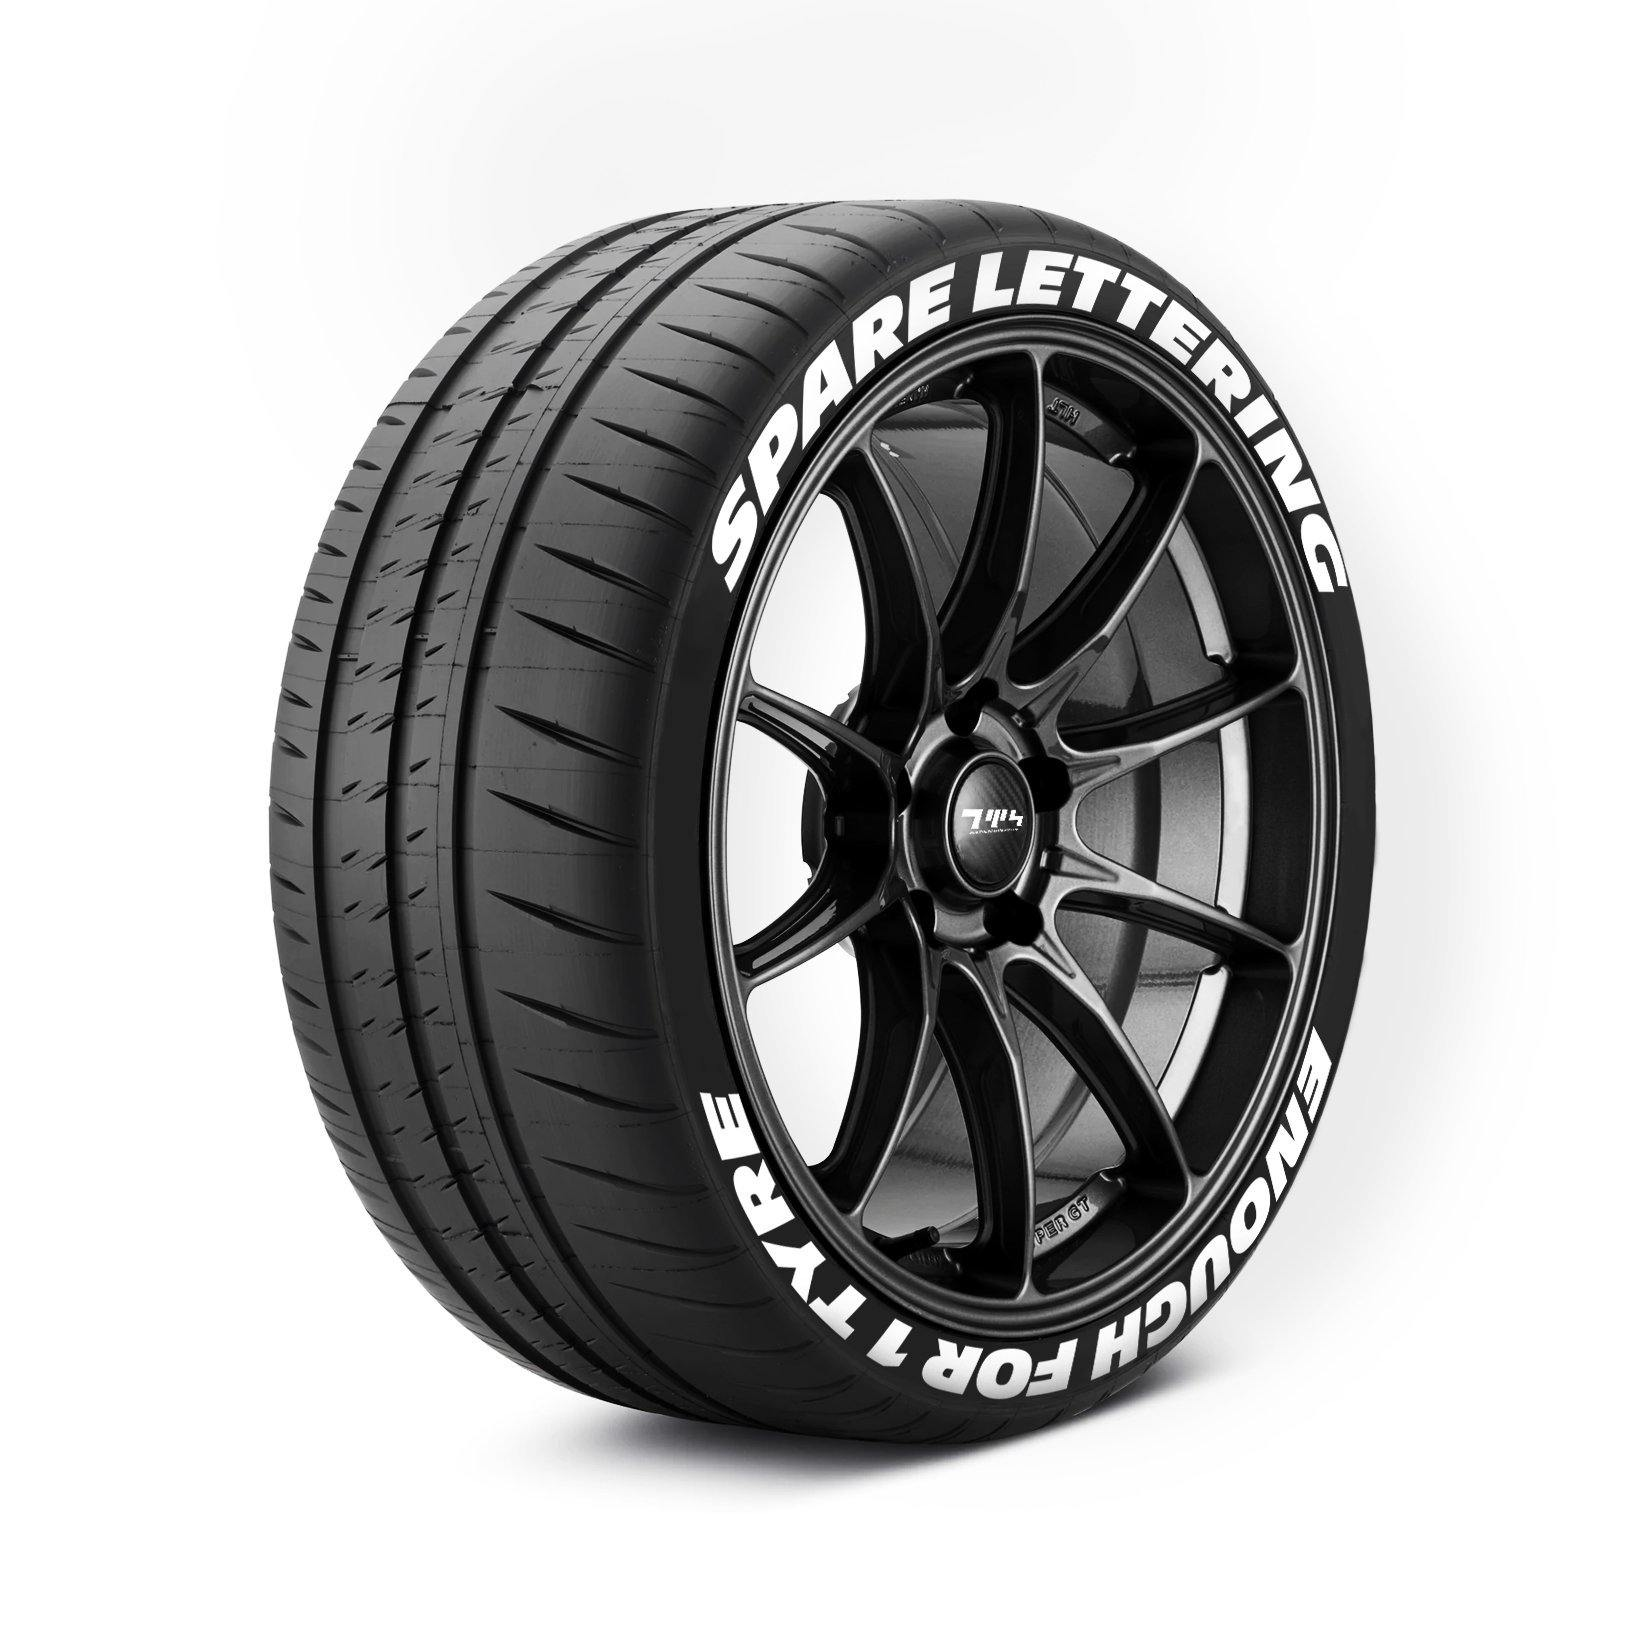 Replacement Decals - Tyre Wall Stickers